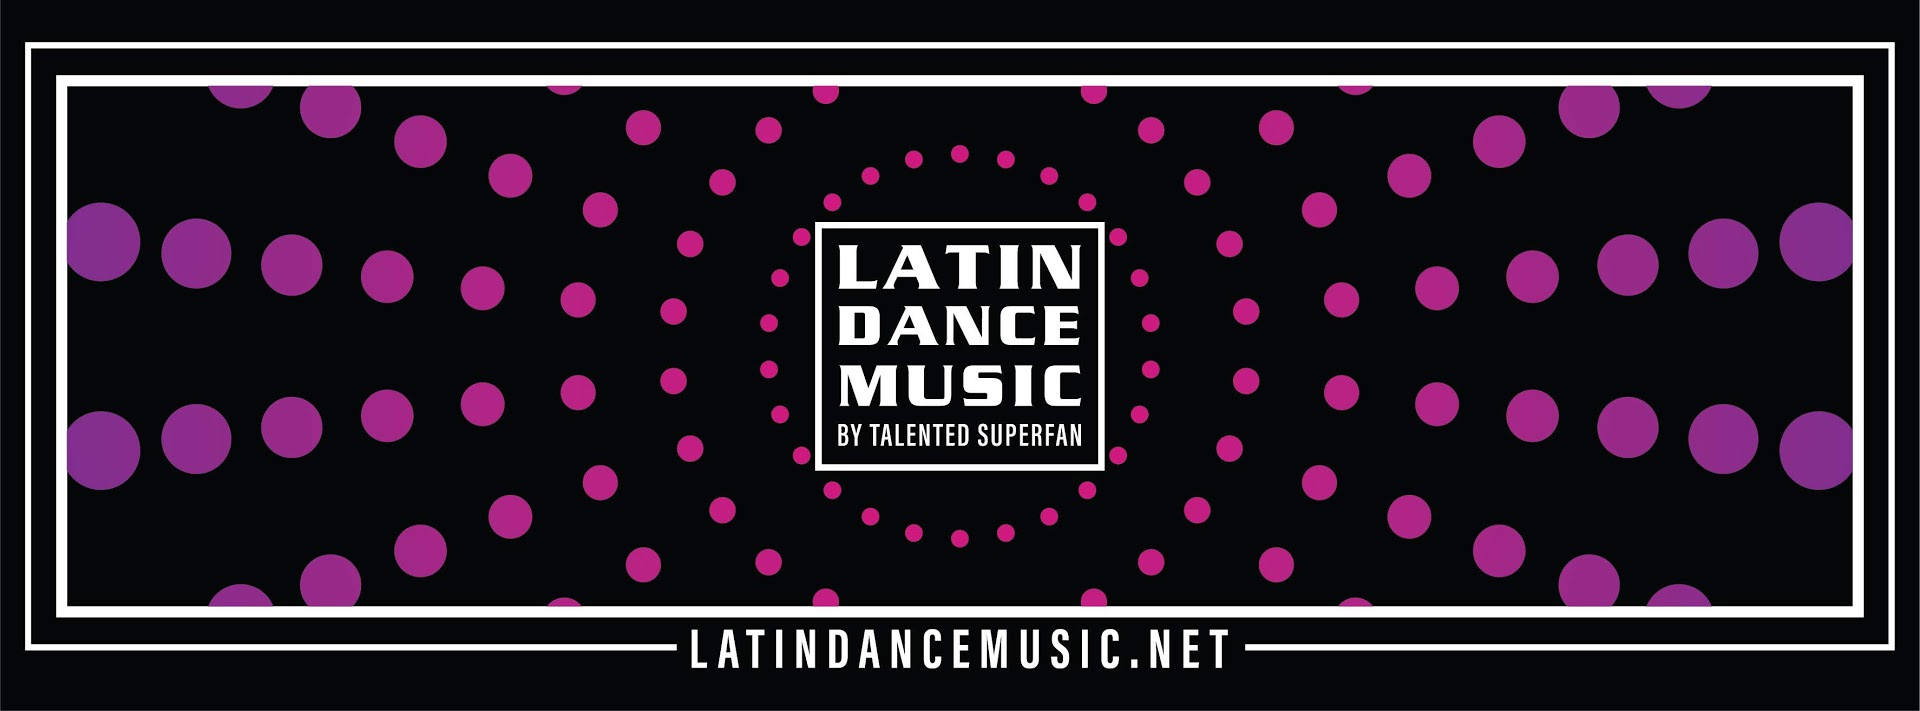 Talented Superfan presents: Latin Dance Music